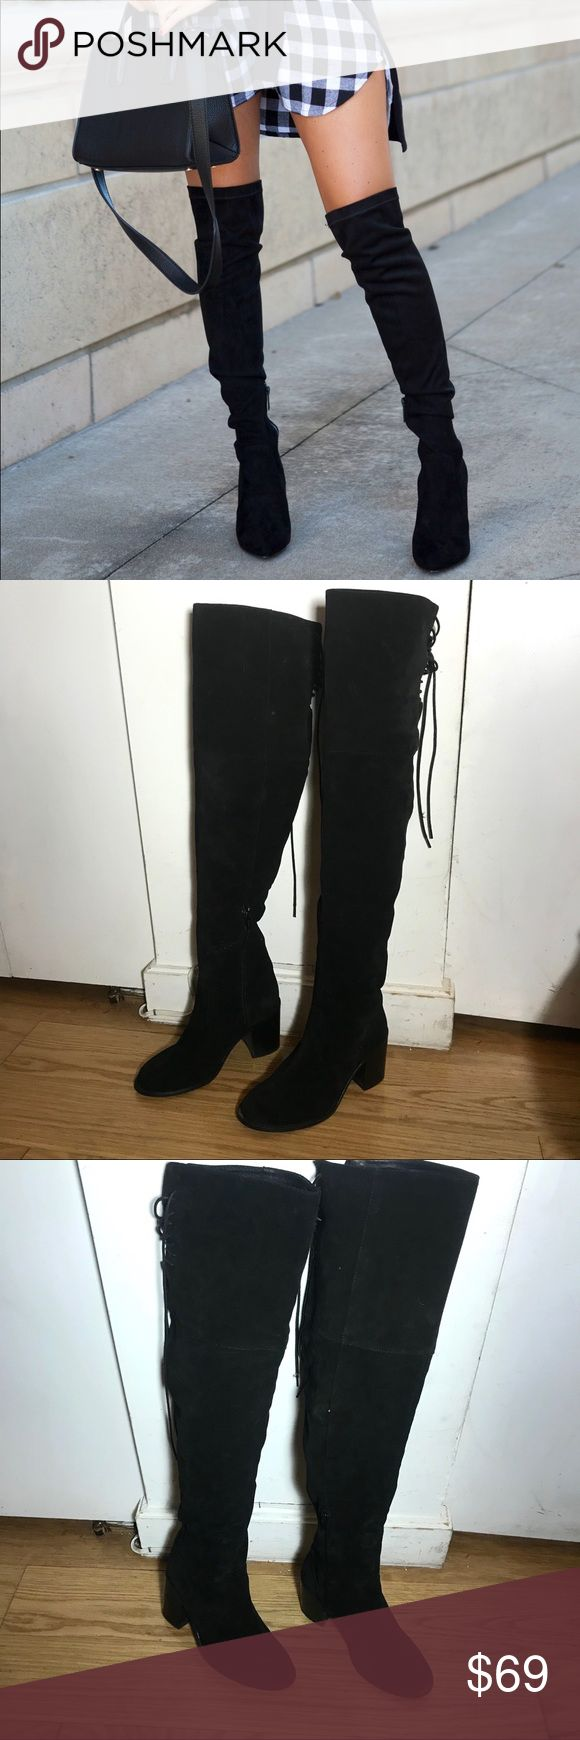 """Urban Outfitters Over-the-Knee Boots Urban Outfitters Over-the-Knee Boots -Size 38 (US 7.5) -By Deena & Ozzy. -Inside zipper. -Suede. -Heel height: 3"""" -Shaft height: 25"""" -Calf Circumference: 14.5"""" -Lace UO detail on back of thighs -Made in Spain. -Excellent condition, some minimal scuffs on suede.  NO Trades. Please make all offers through offer button. Urban Outfitters Shoes Over the Knee Boots"""